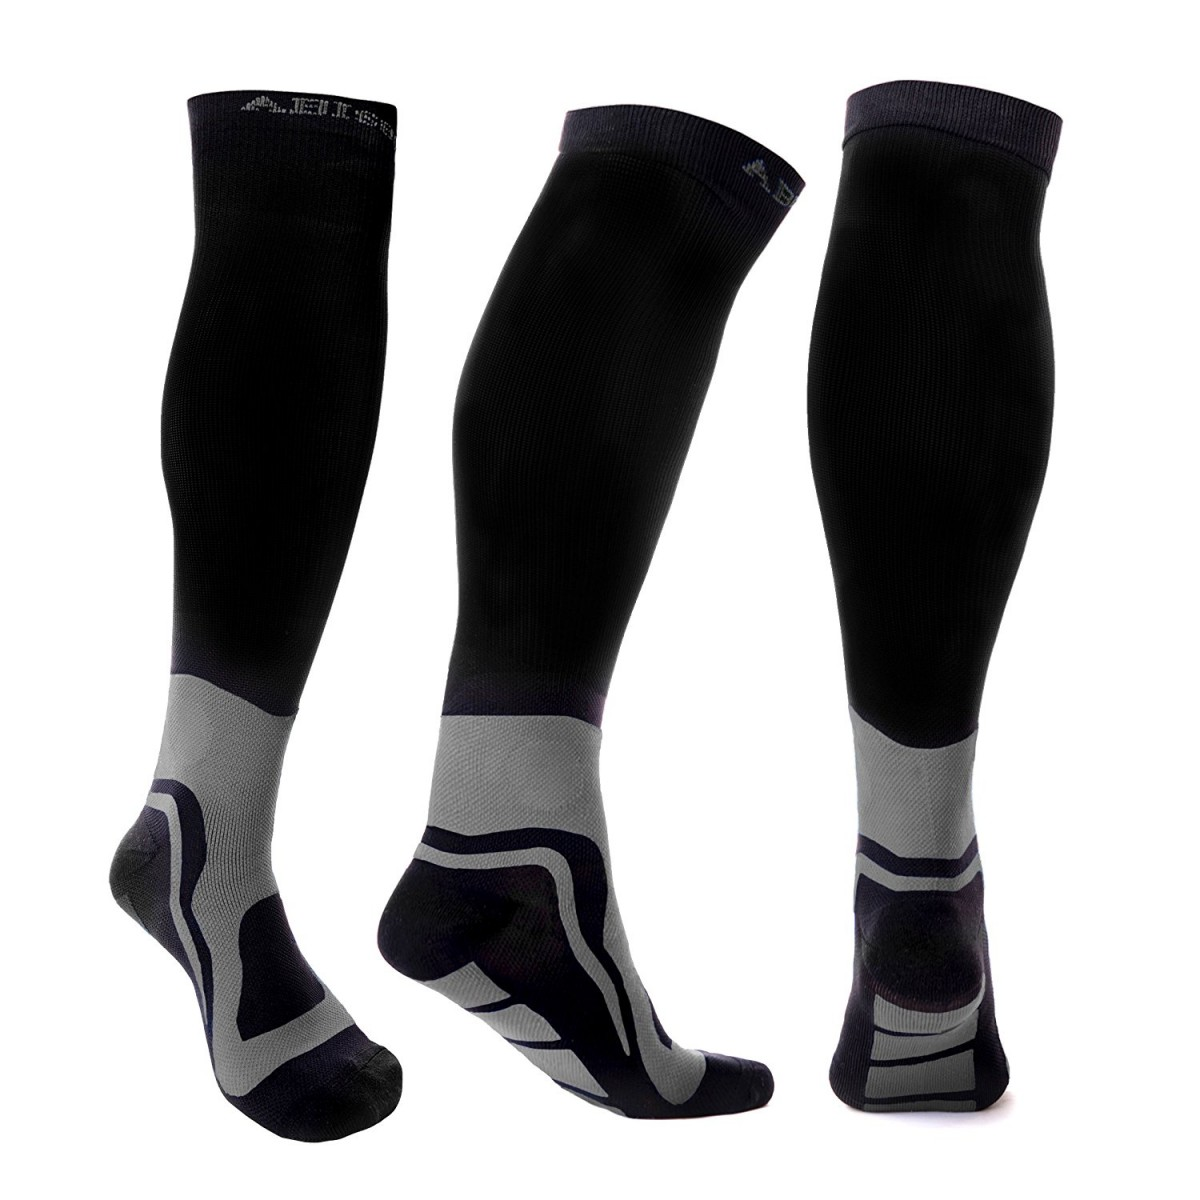 2a4dec4c69 Compression Socks for Women and Men,Graduated Compression Socks 20-30mmHg  for Nurse, Athlete, Runners, Maternity, ...